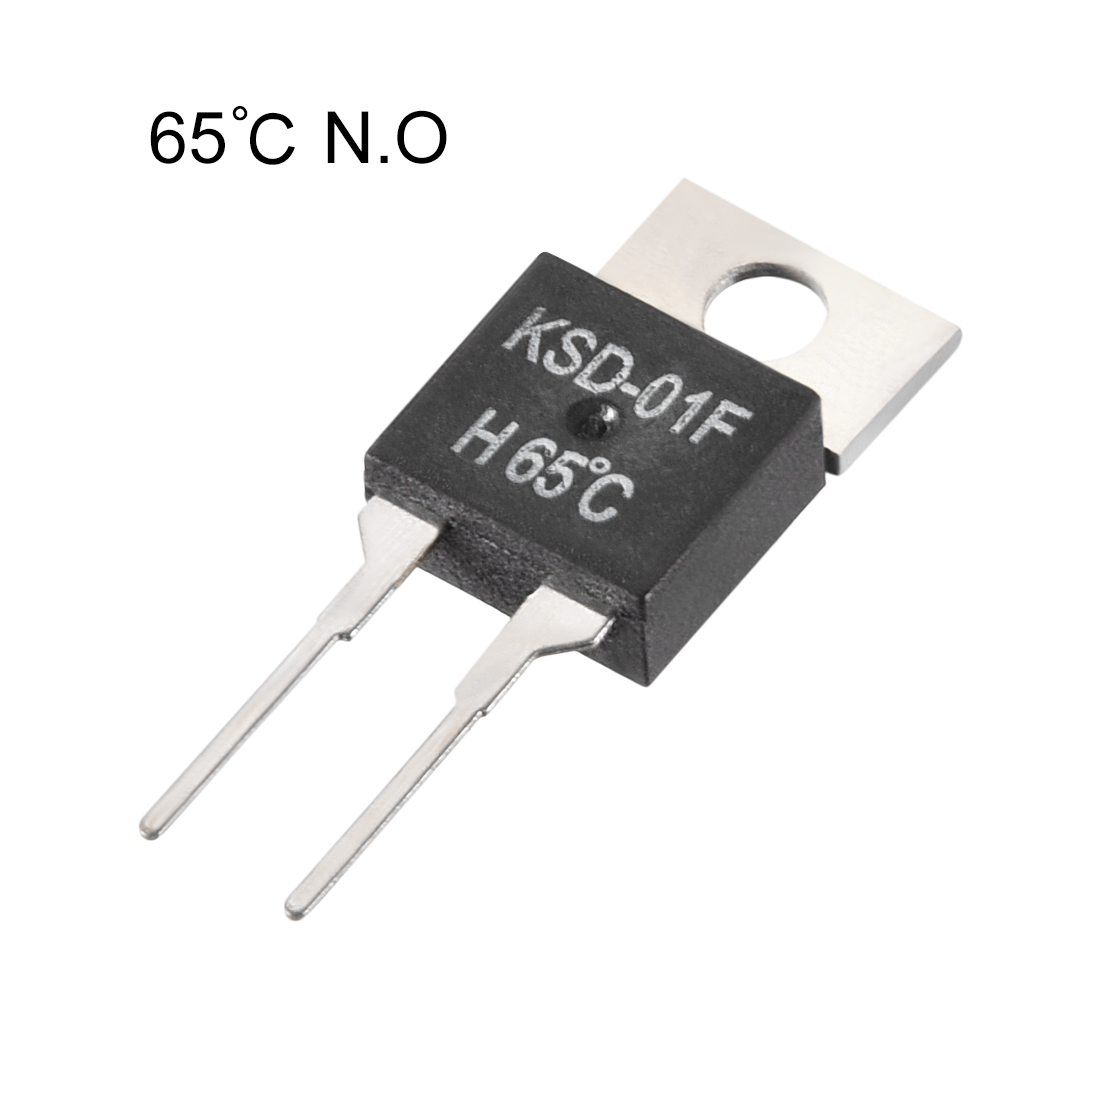 KSD-01F Thermostat, Temperature Controller 65鈩?N.O Normal Open 5pcs - image 2 of 3